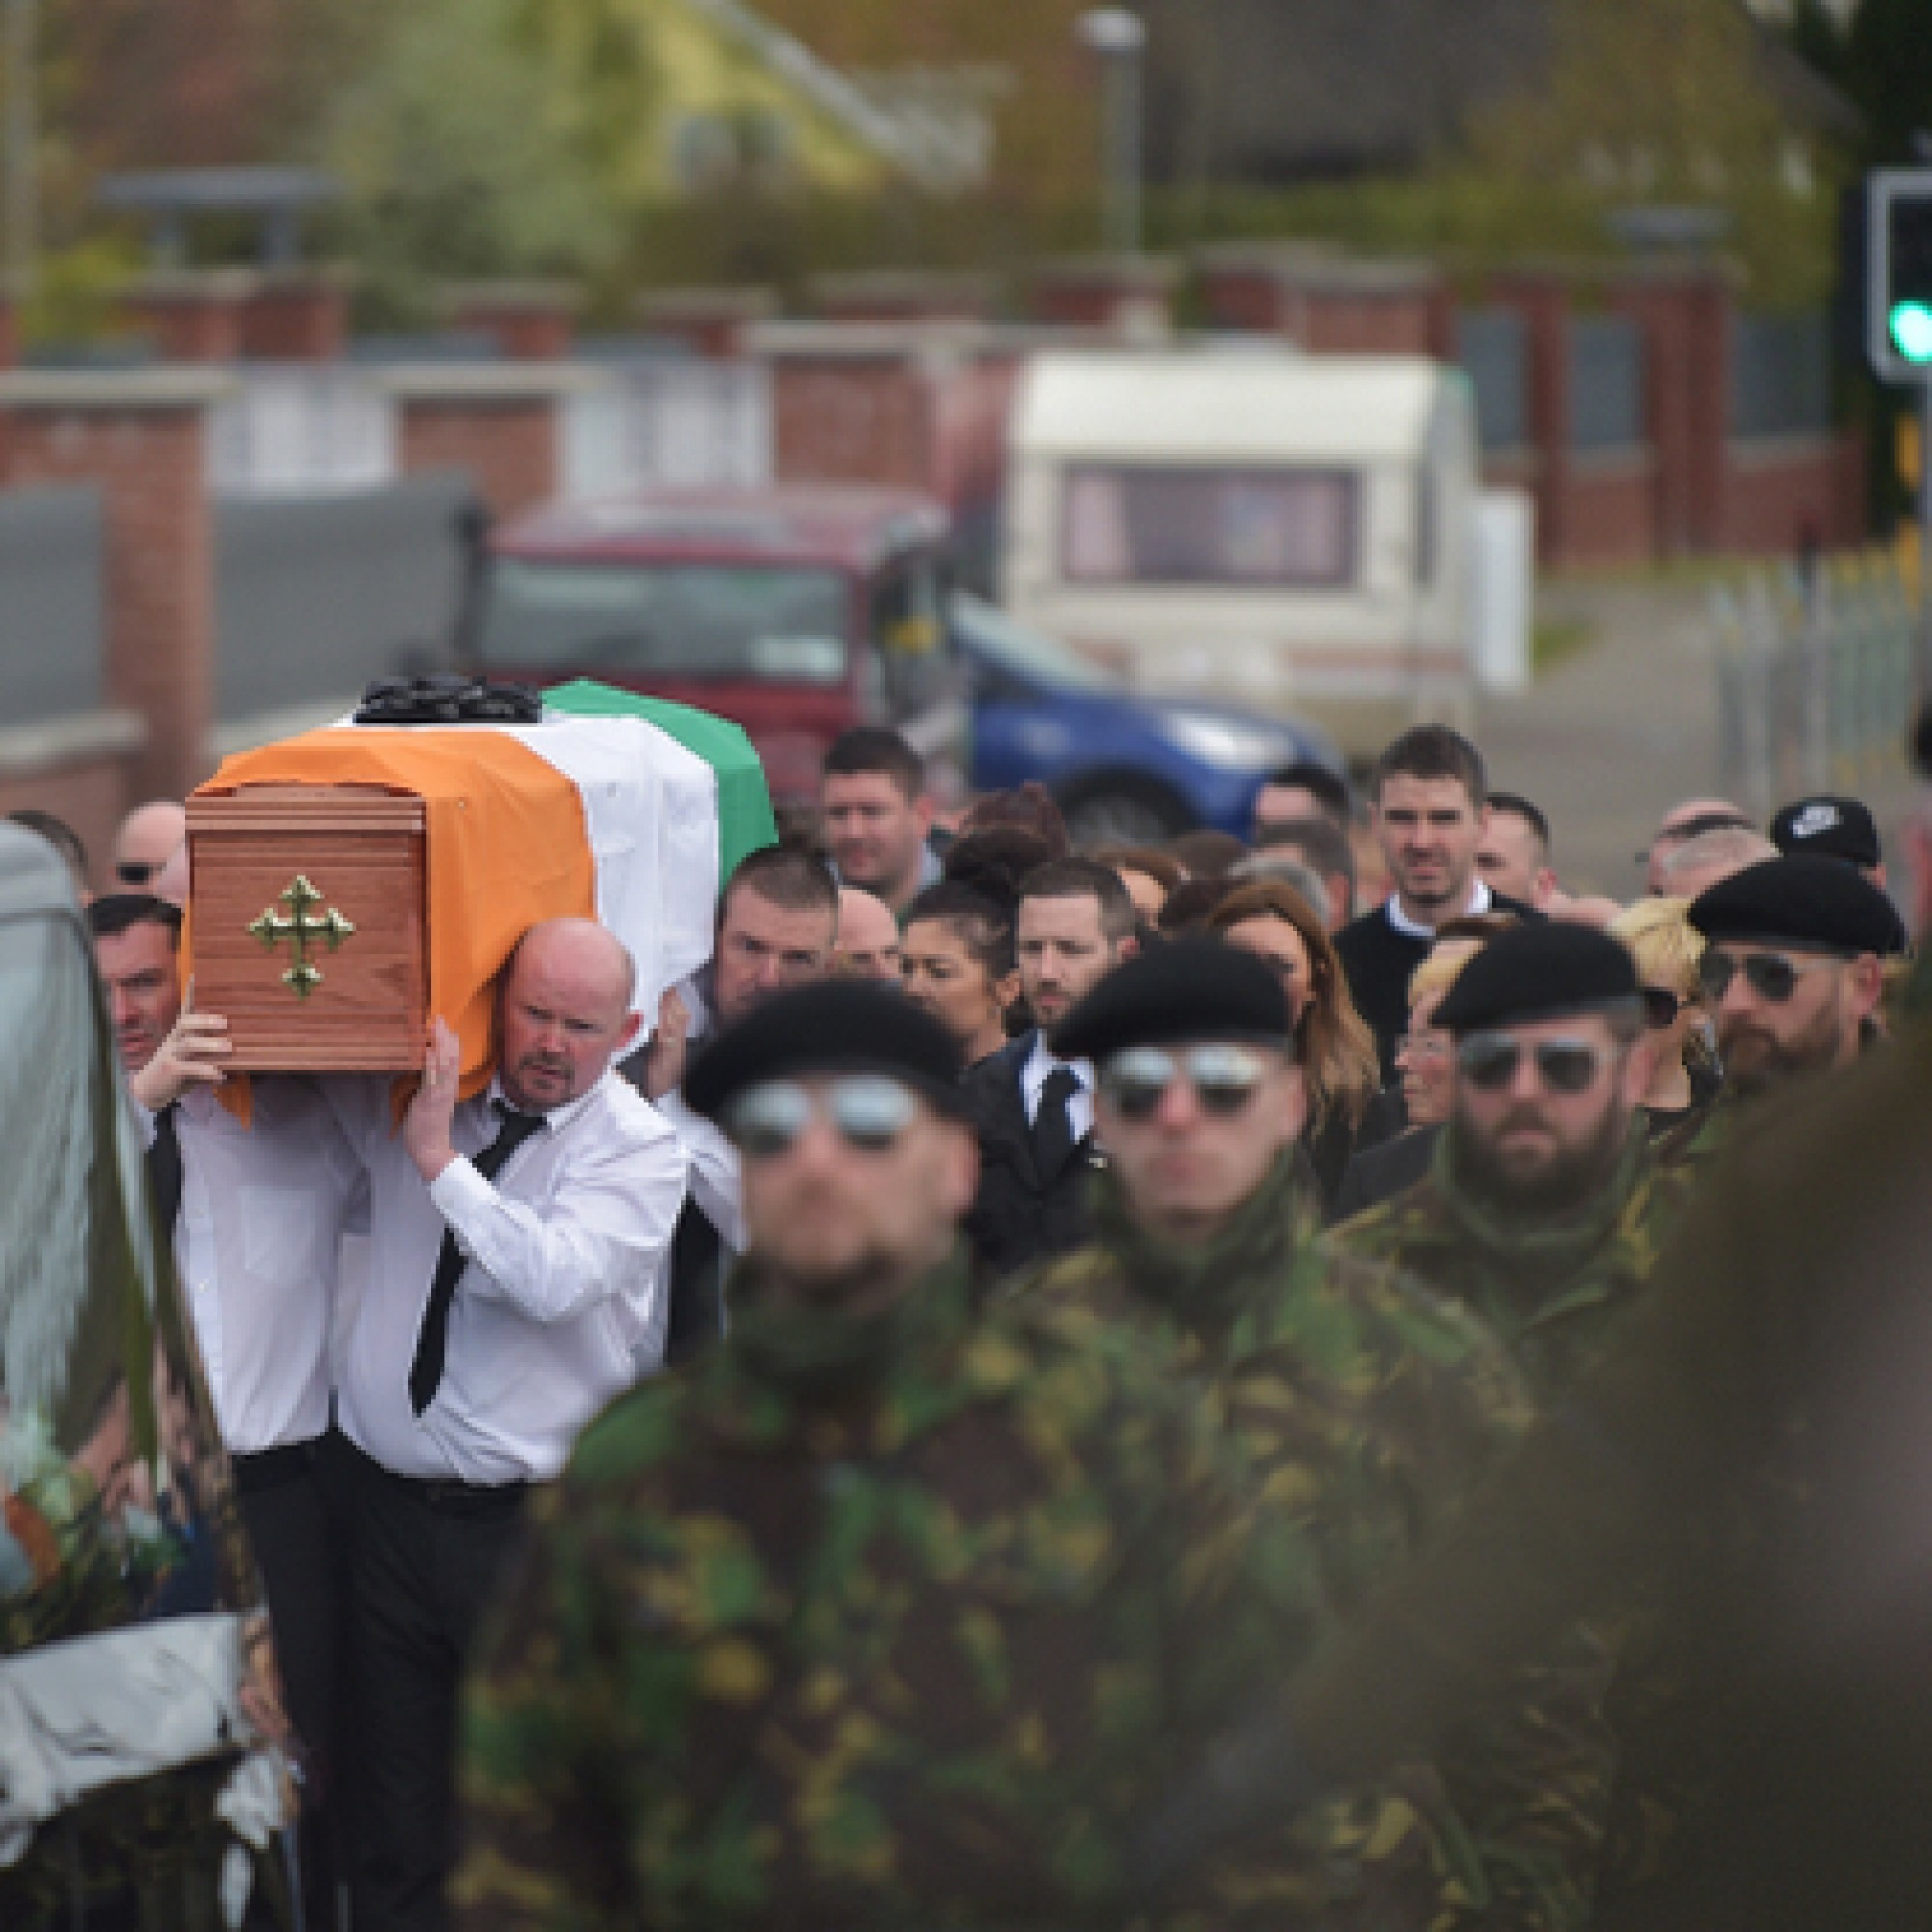 Police begin searches after arrests at paramilitary-style funeral